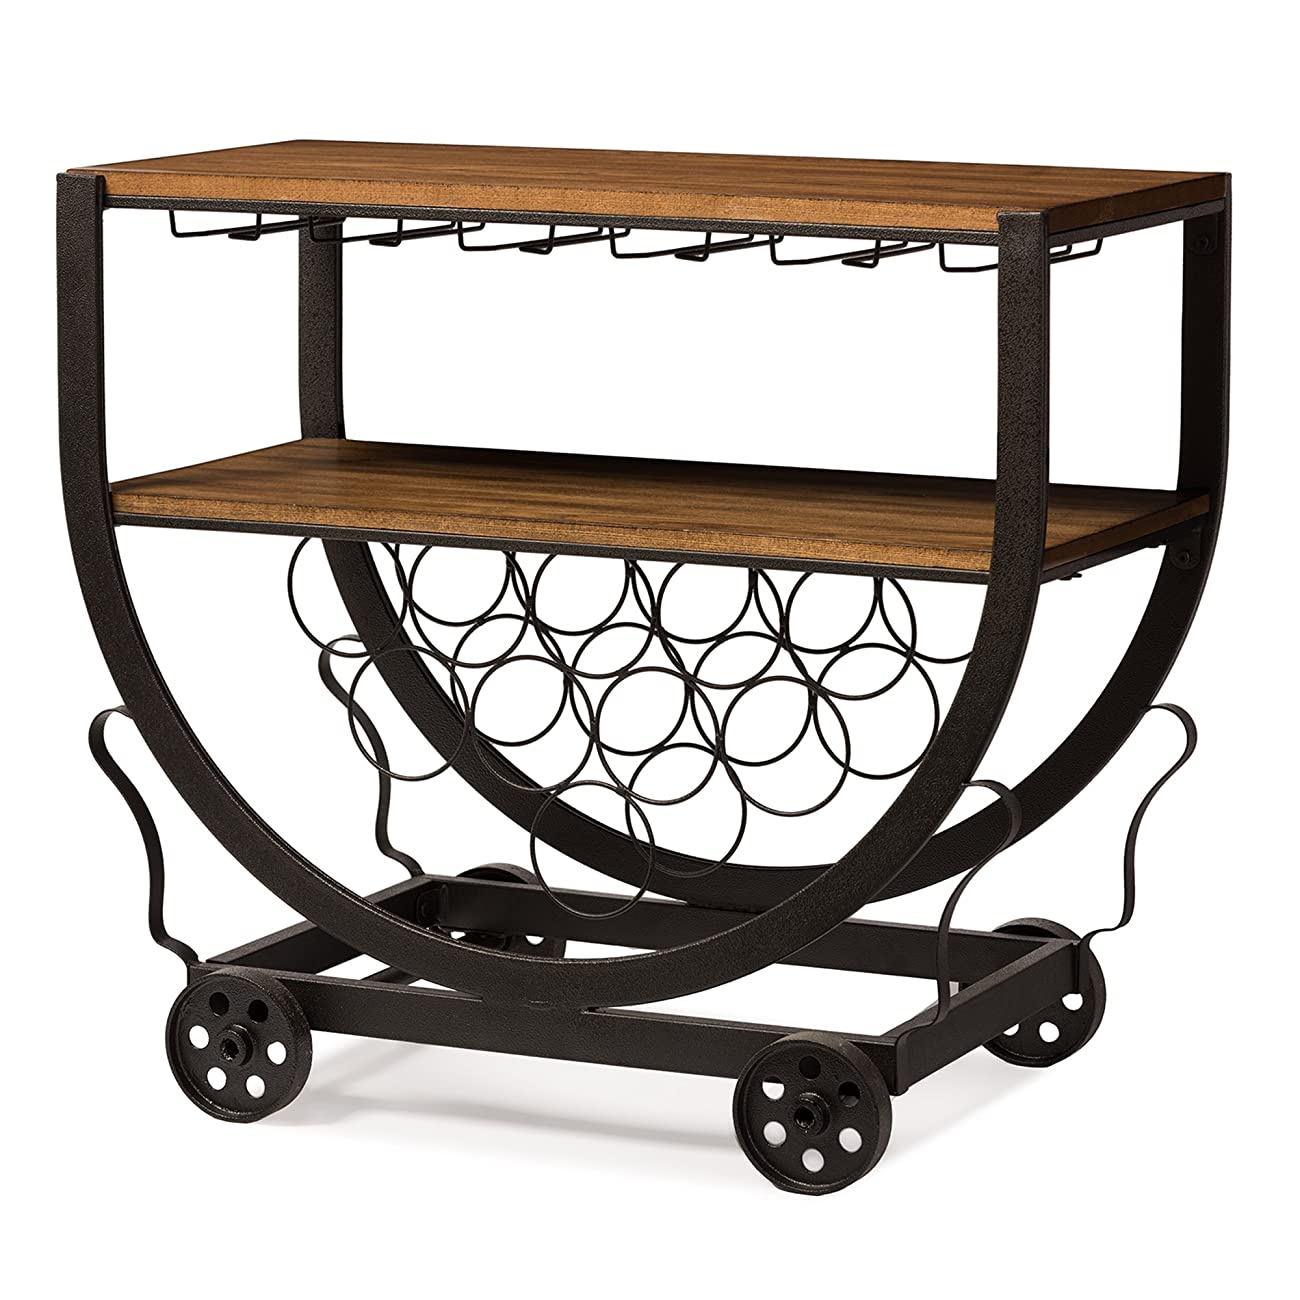 Baxton Studio Triesta Antiqued Vintage Industrial Metal & Wood Wheeled Wine Rack Cart 1